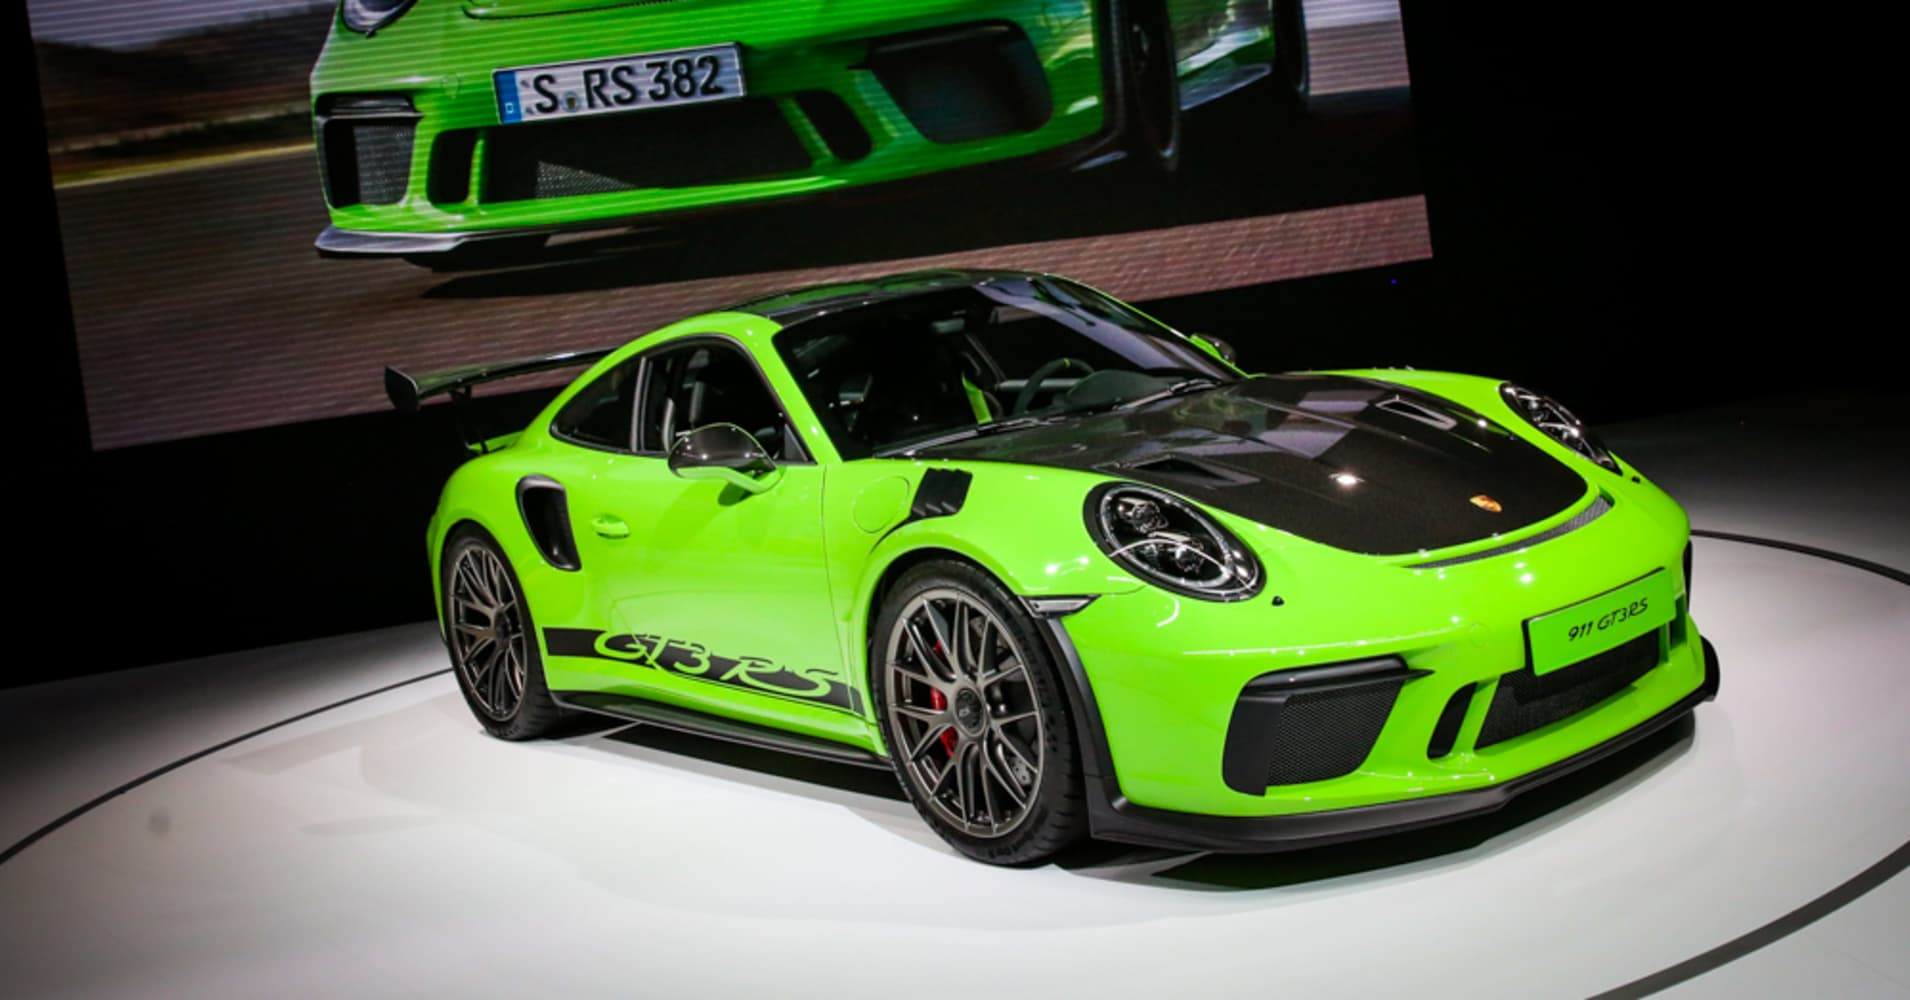 Electric Concept Cars, Beefed-up SUVs And A 'lizard Green